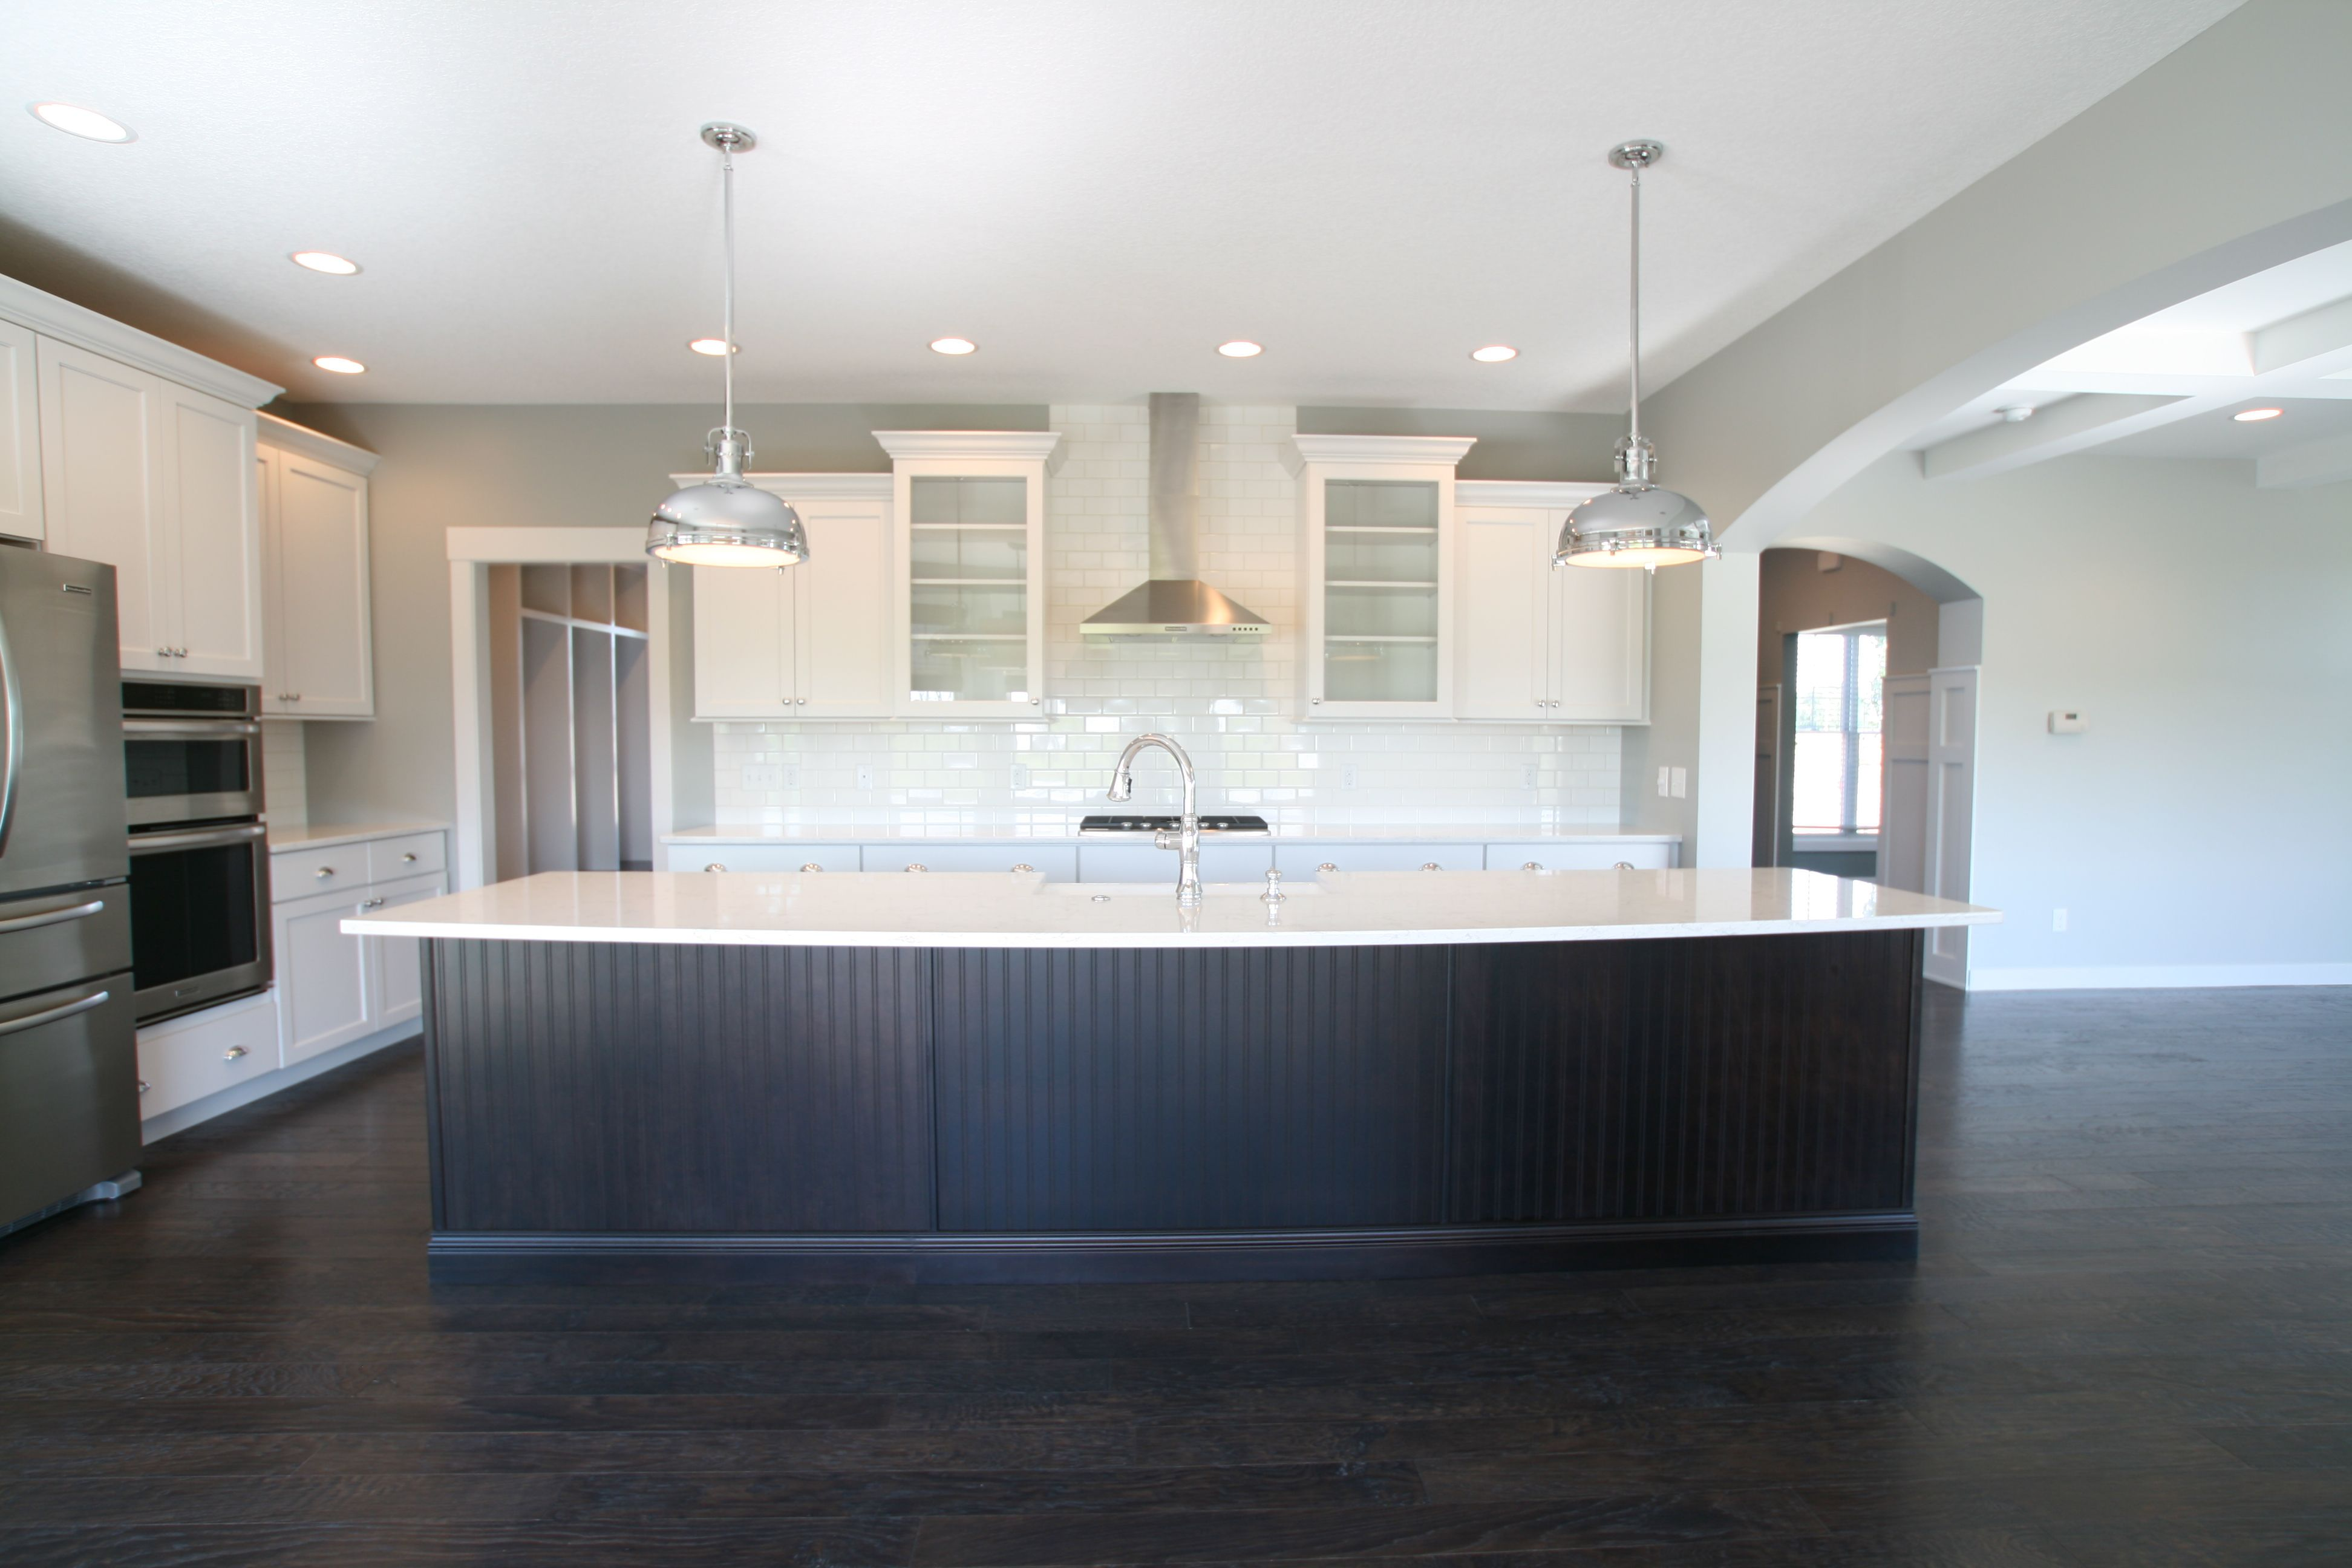 Kitchen Bathroom Remodeling In Geneseo Il By Village Home Stores Staggered Kitchen Cabinets Off White Kitchens At Home Store